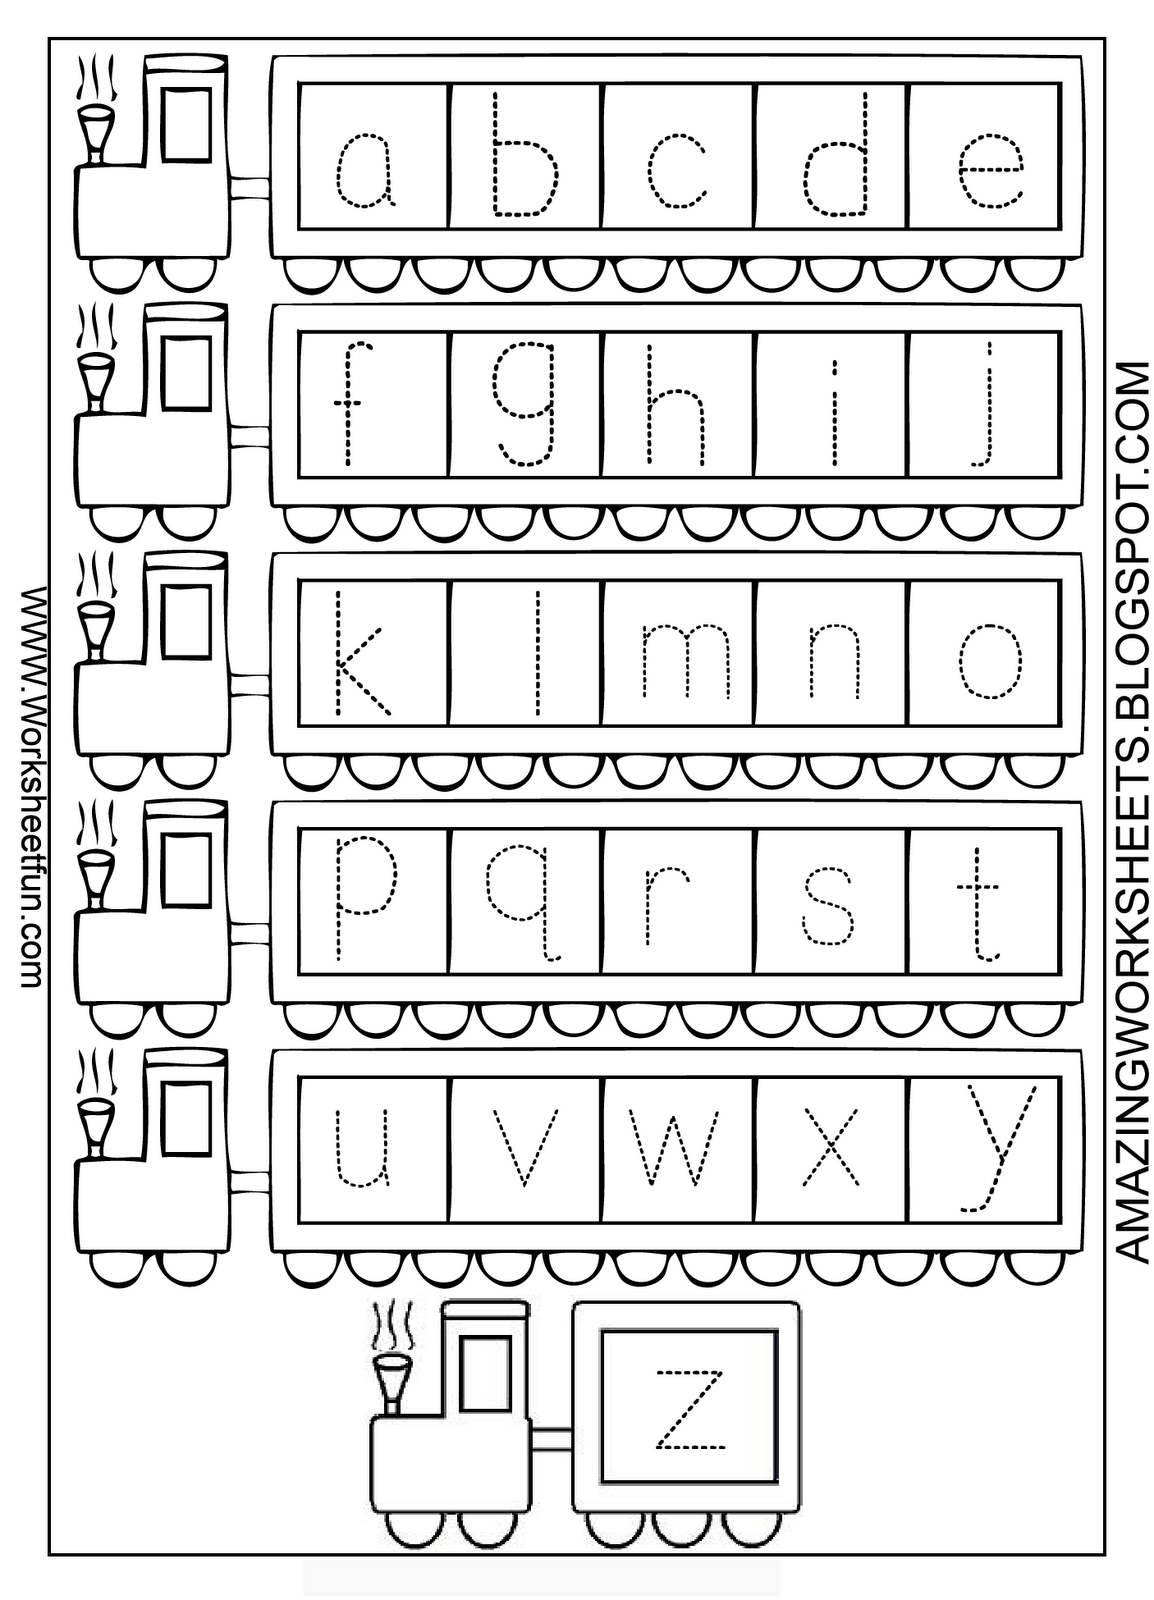 Abc sheets for preschool - Alphabet Worksheets For Kindergarten A Z Worksheetfun Free Printable Worksheets